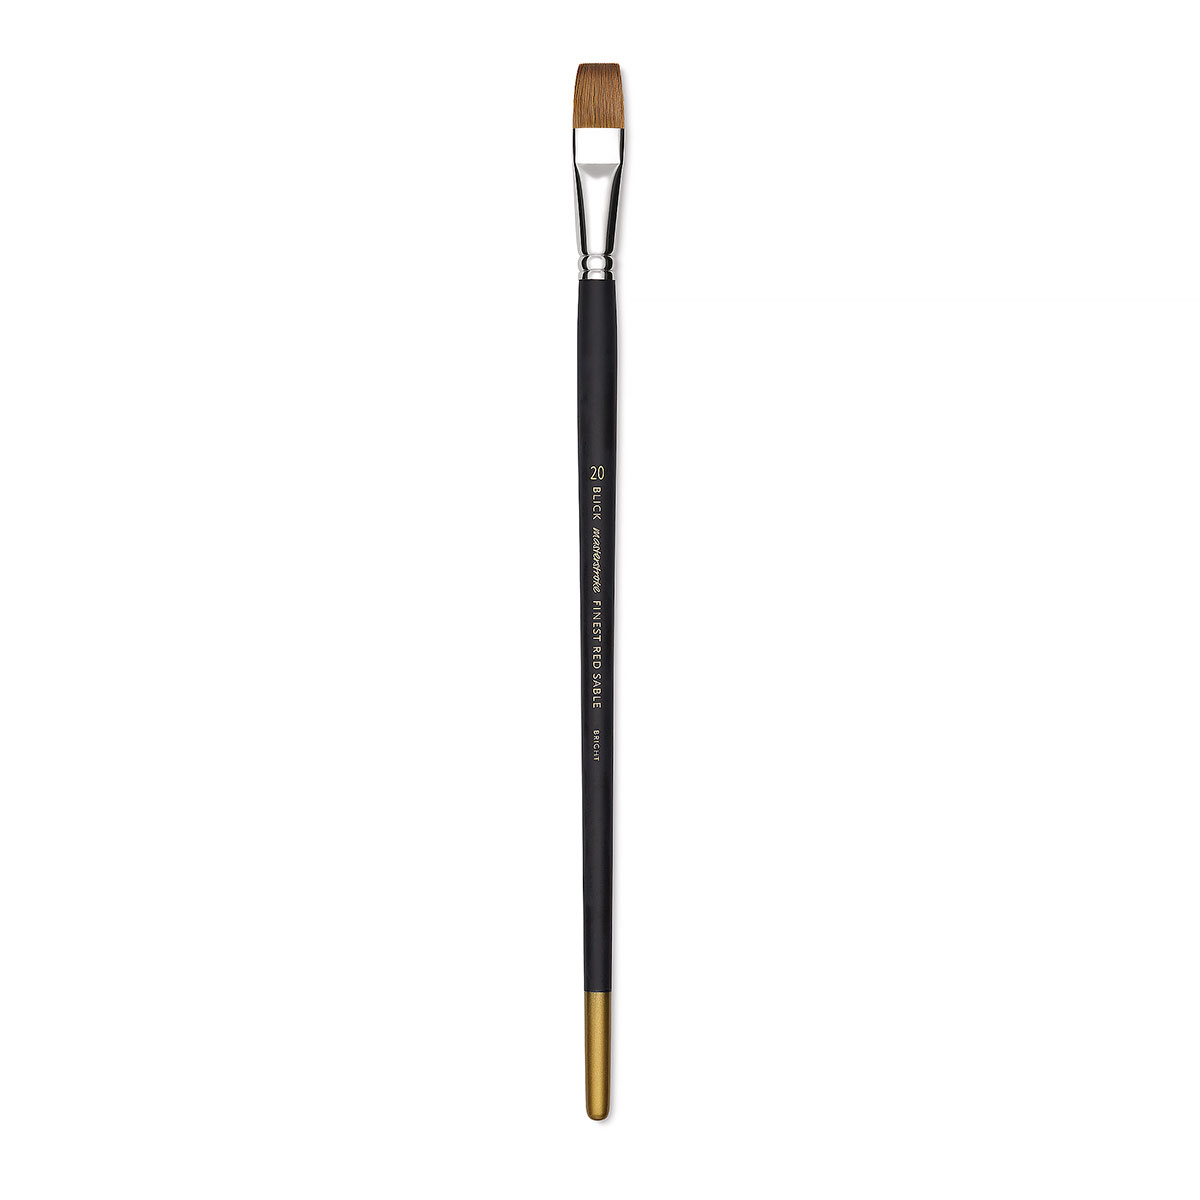 Blick Masterstroke Finest Red Sable Brush - Bright, Size 20, Long Handle